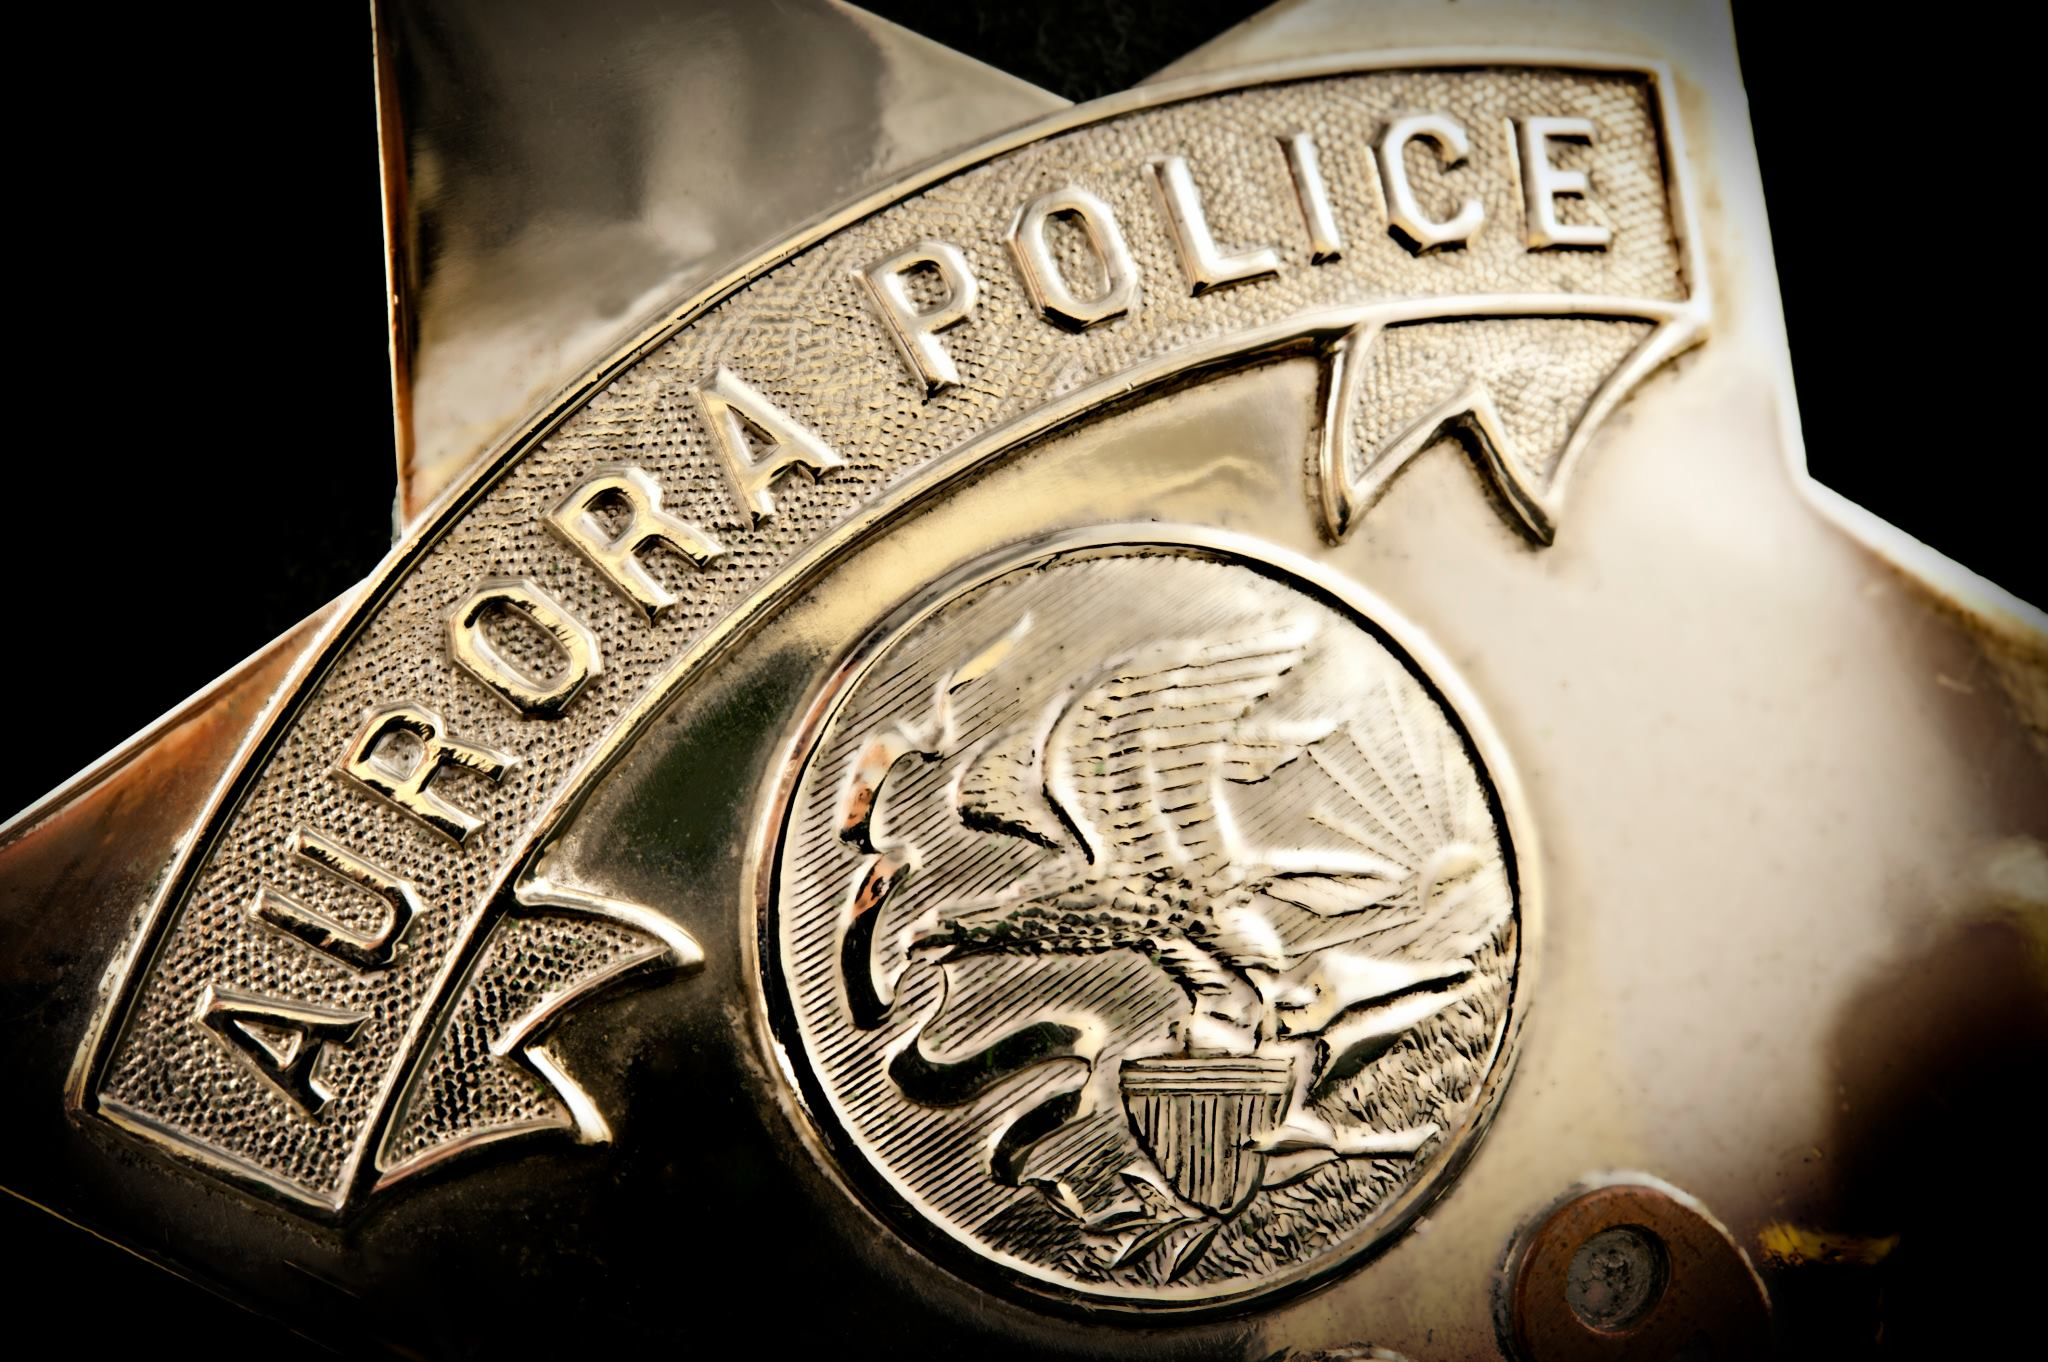 Two people were killed in a vehicle crash Jan. 23, 2021, after the vehicle they were in fled from police in suburban Aurora.